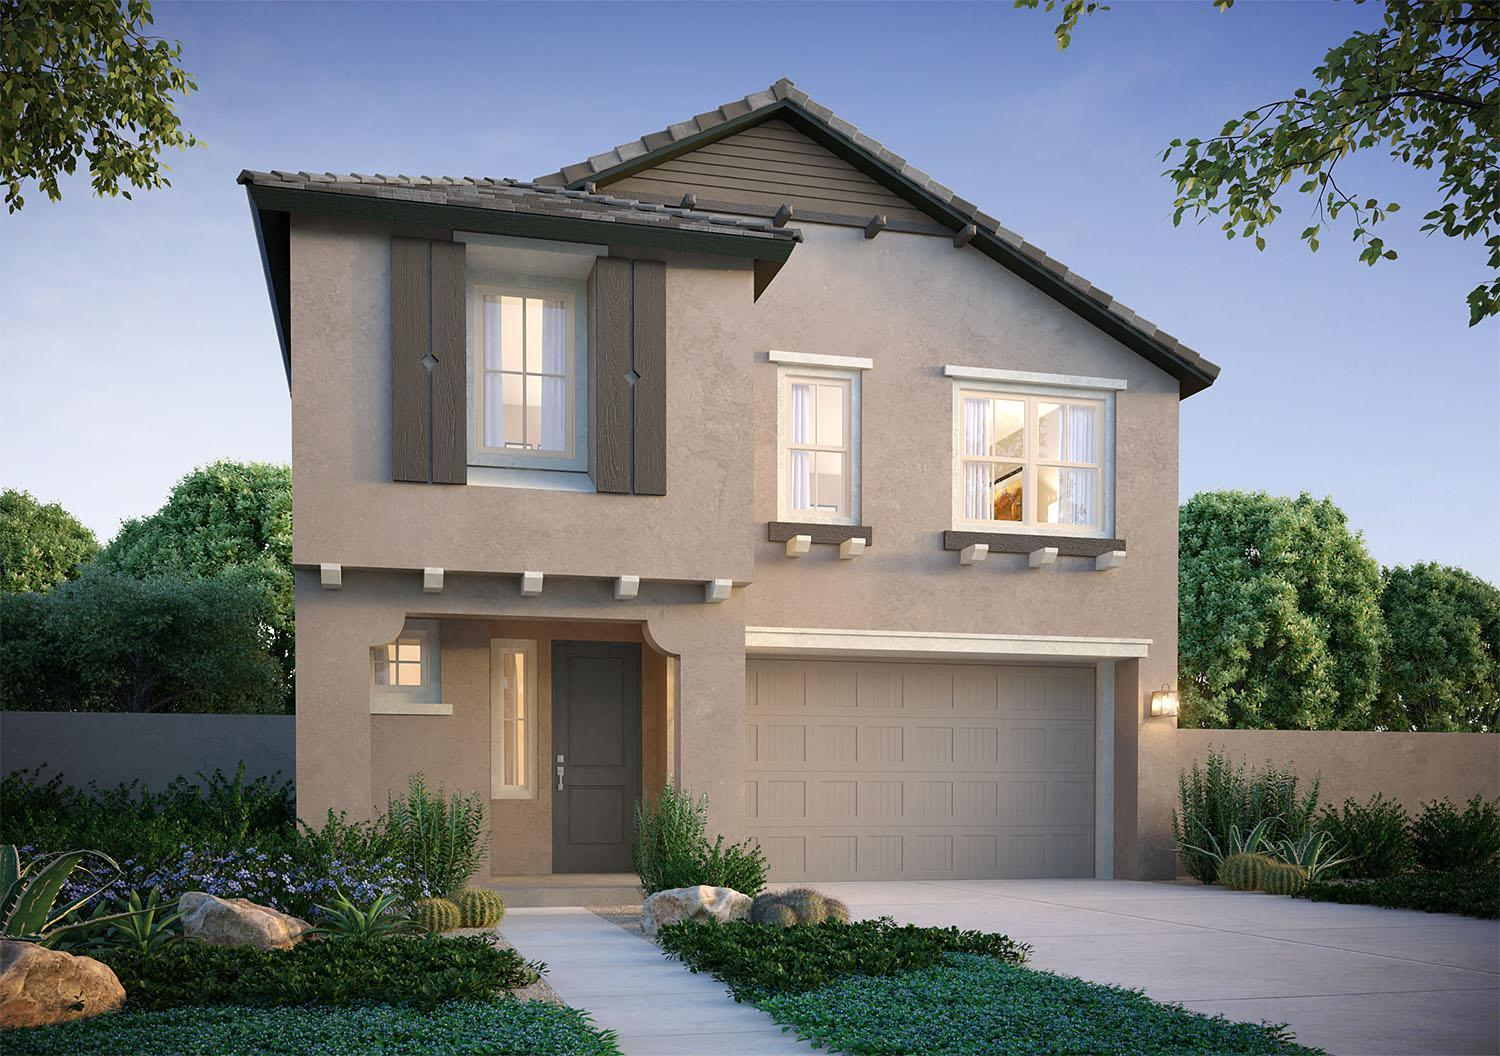 http://partners-dynamic.bdxcdn.com/Images/Homes/Lands59634/max1500_40432877-200110.jpg